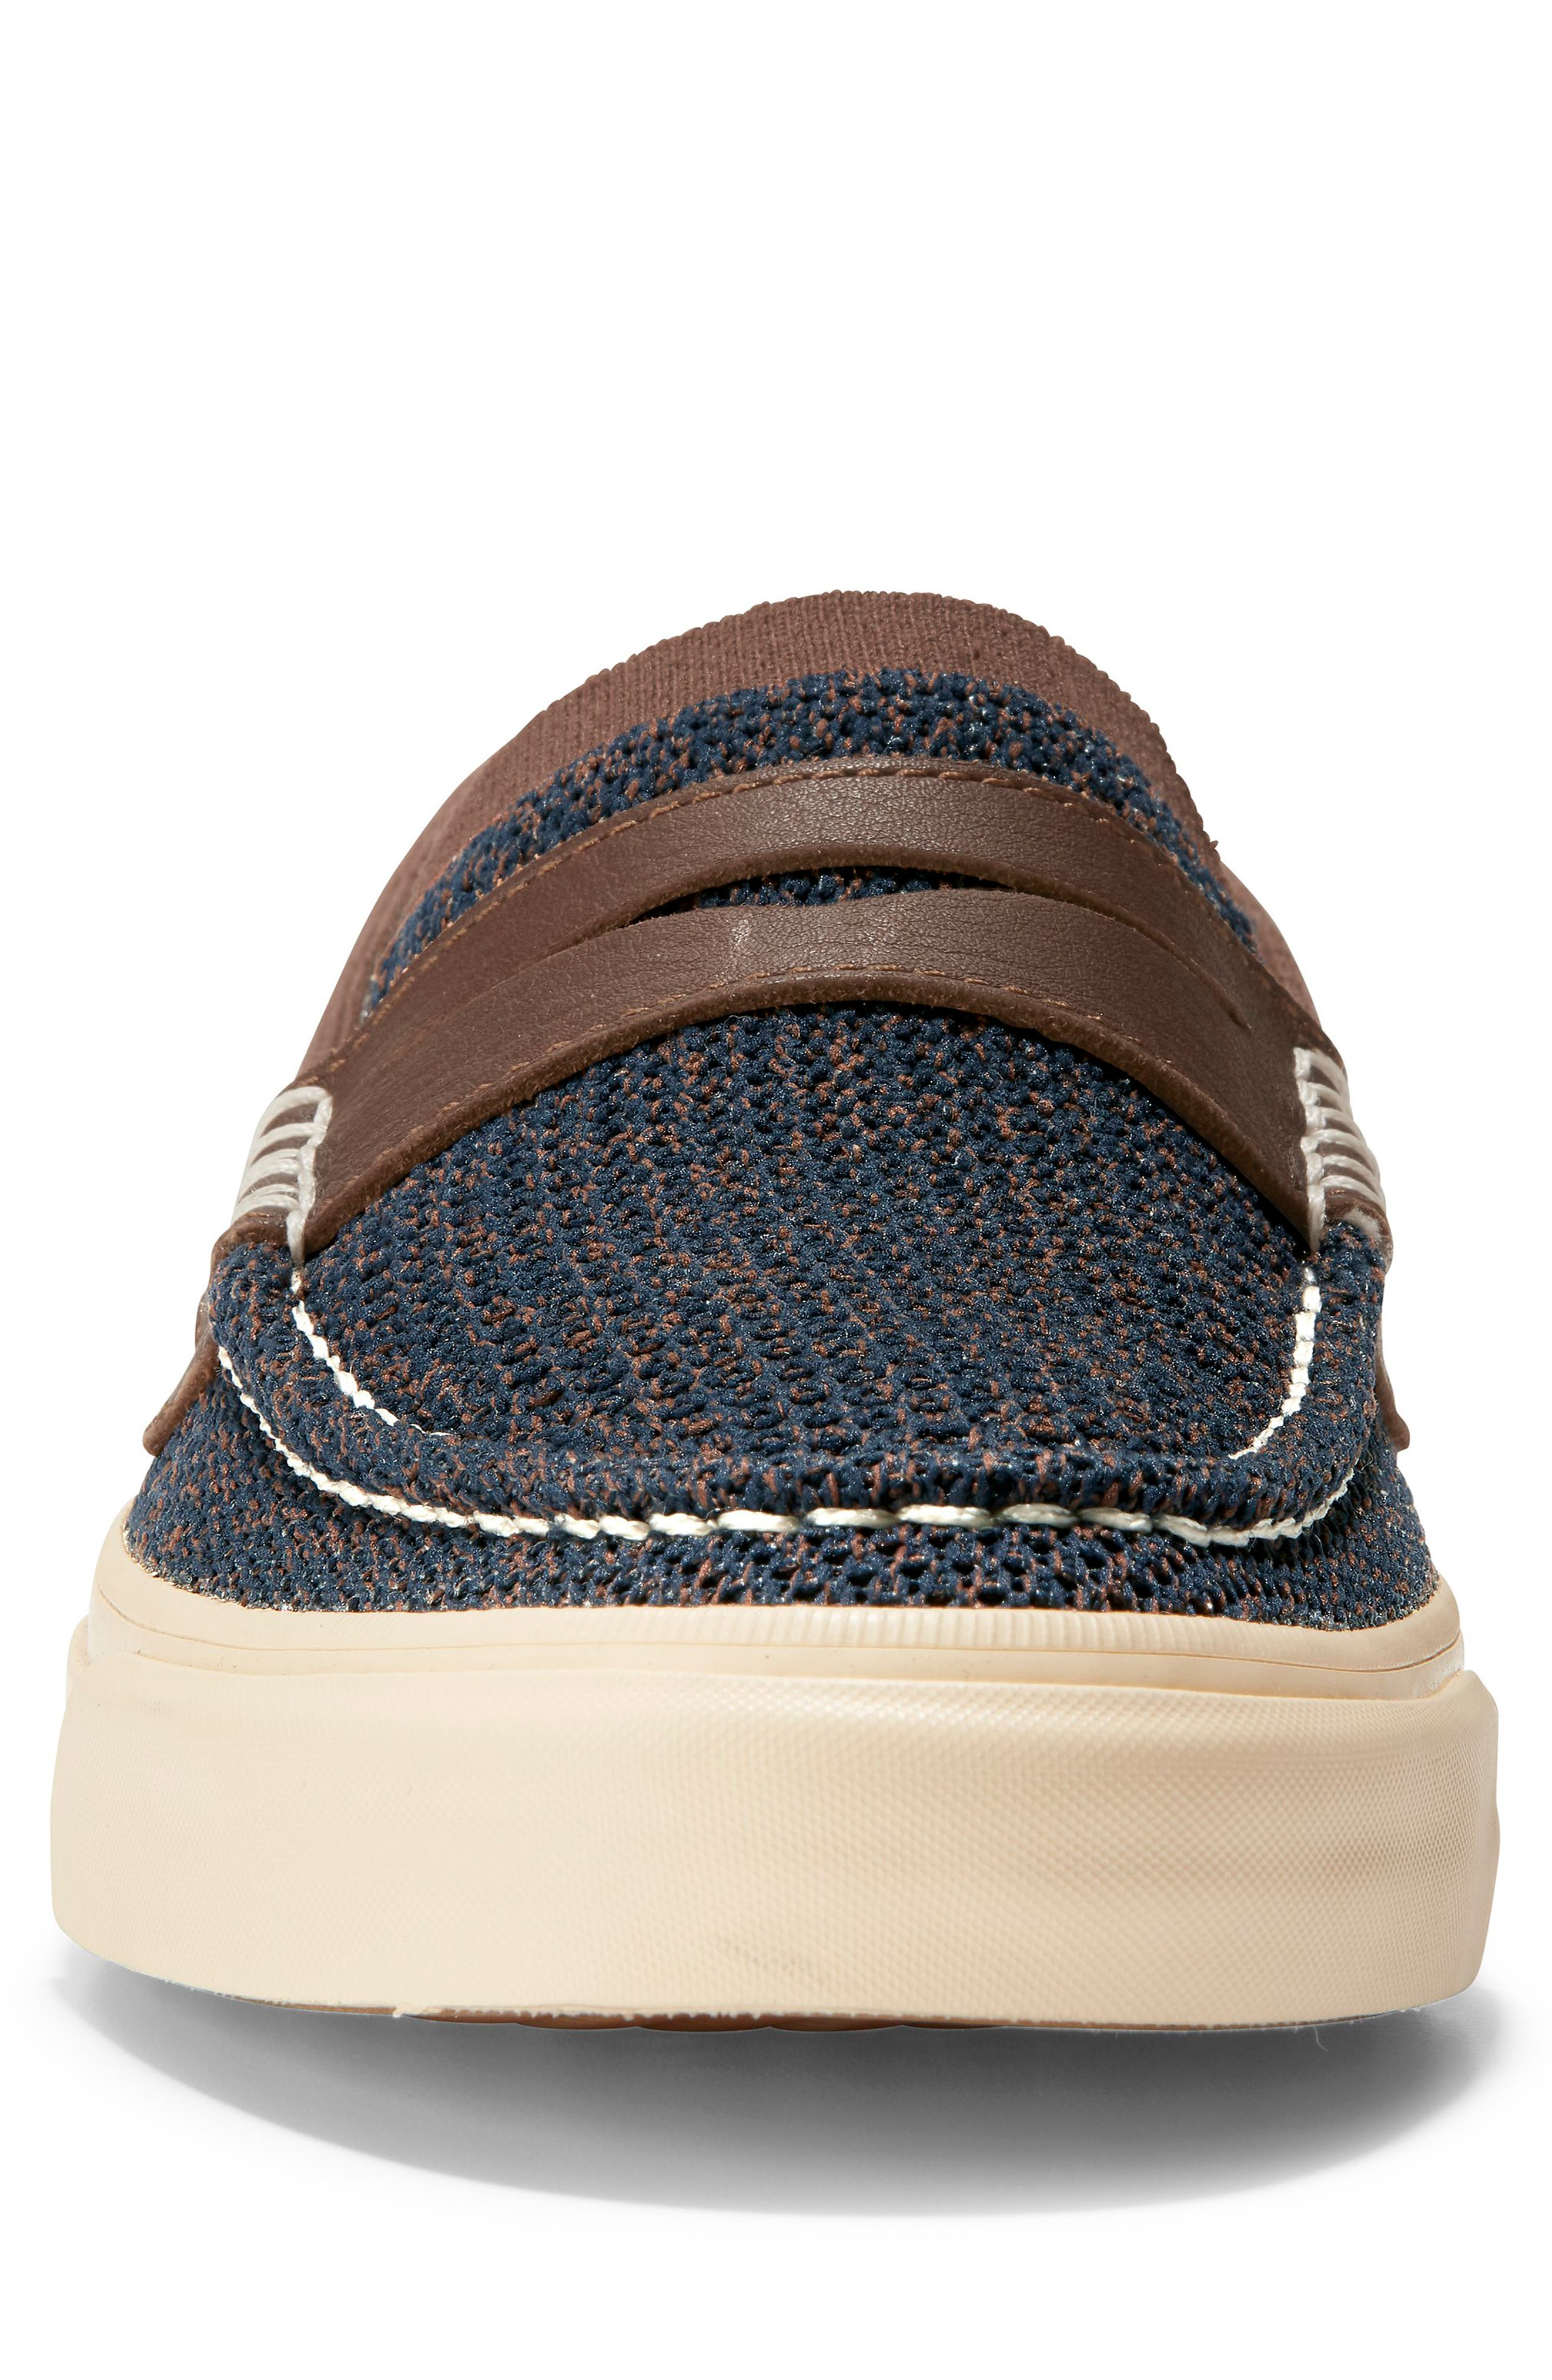 Pinch Weekend LX Penny Loafer,                             Alternate thumbnail 40, color,